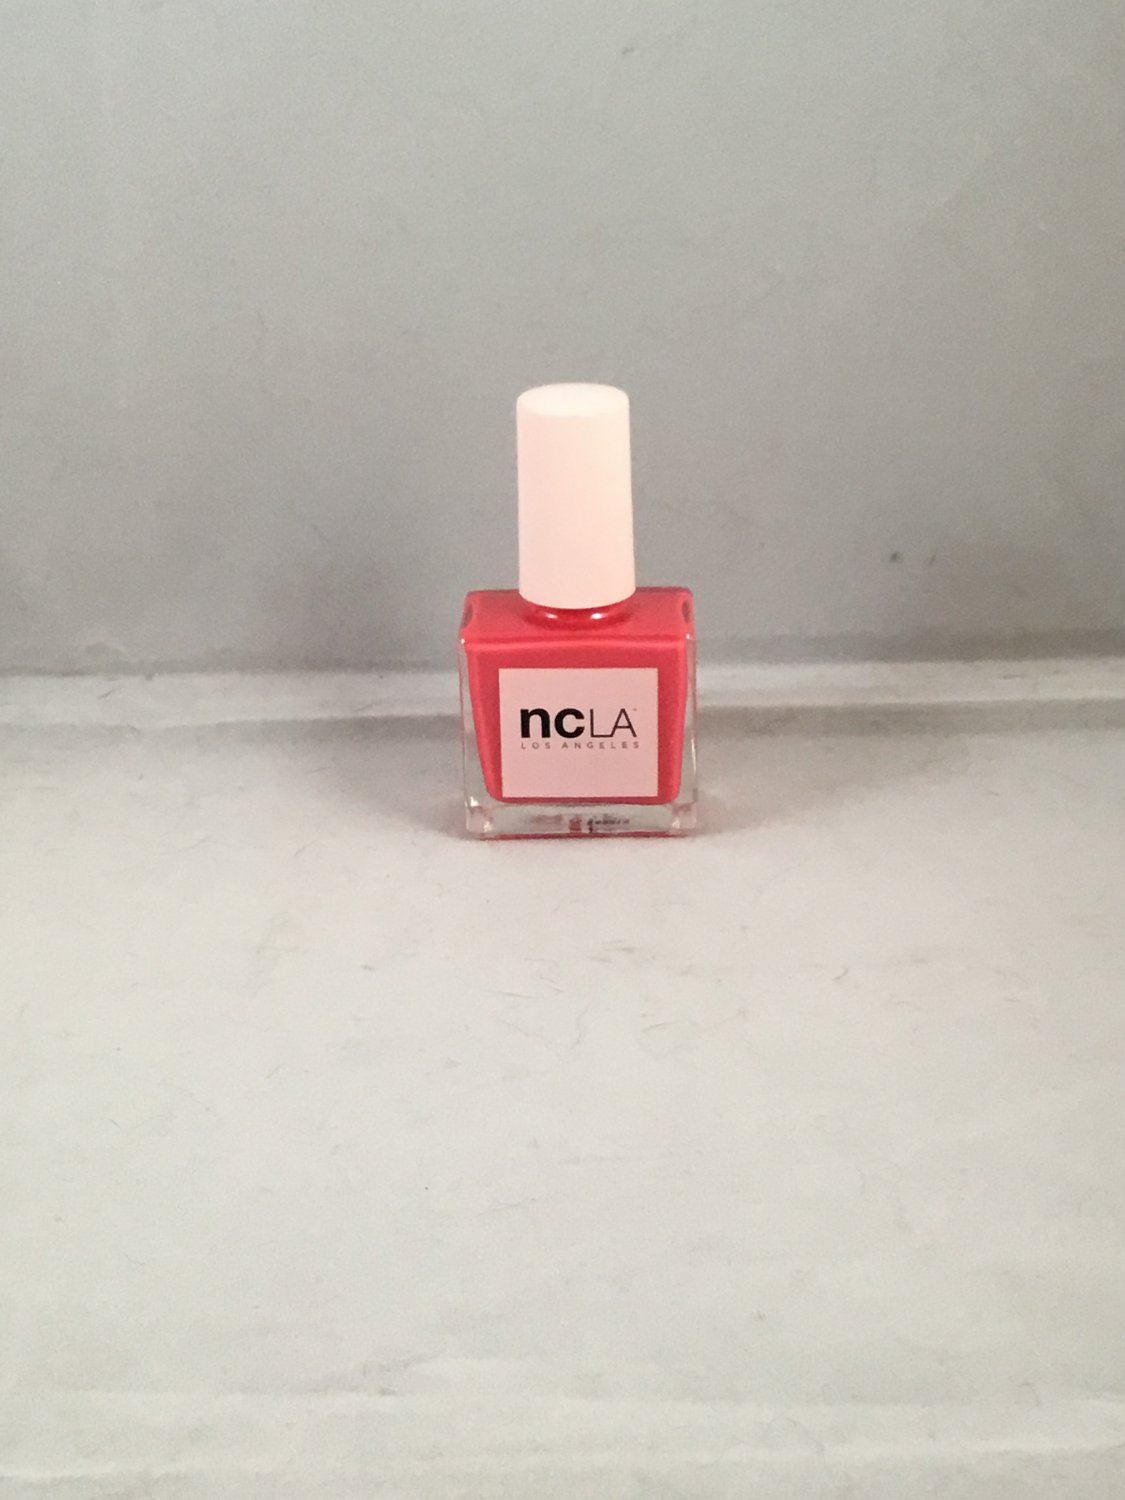 NCLA 7 Free Luxury Nail Lacquer I Been Drinkin' Color Polish